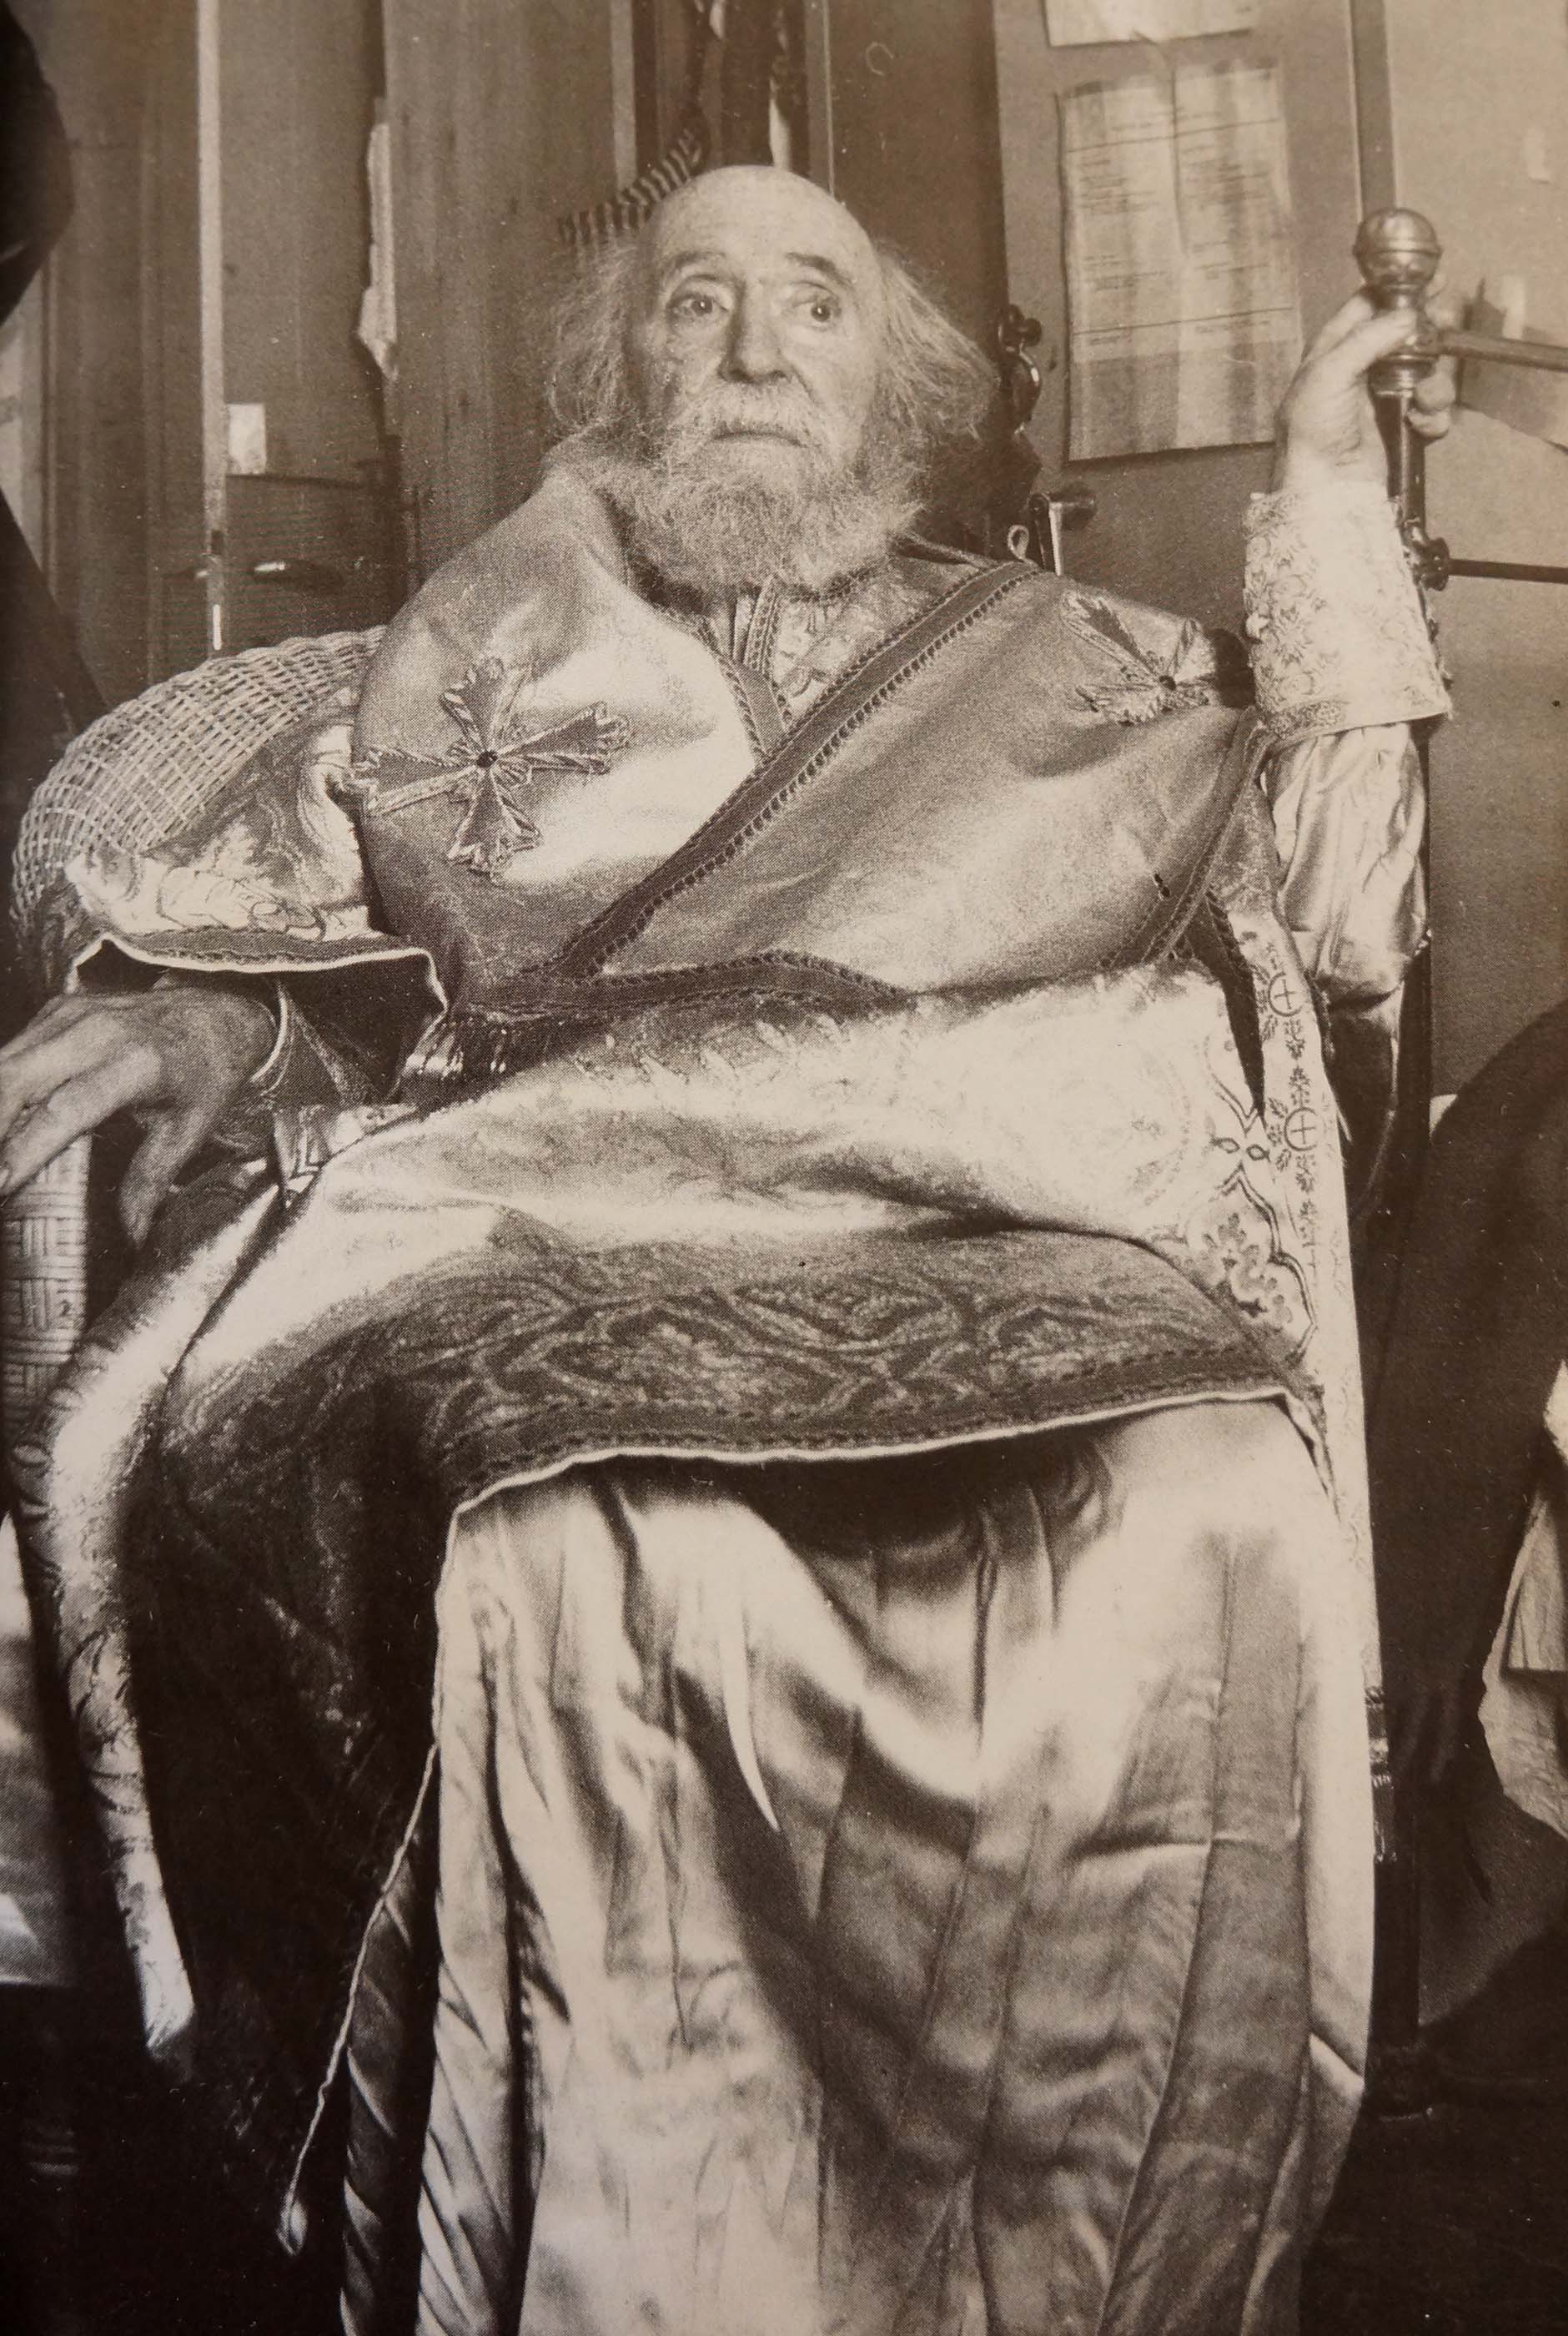 tsarouchis in byzantine attire, 1989 just one day before his death at 79.  photo: yiorgos tourkovasilis